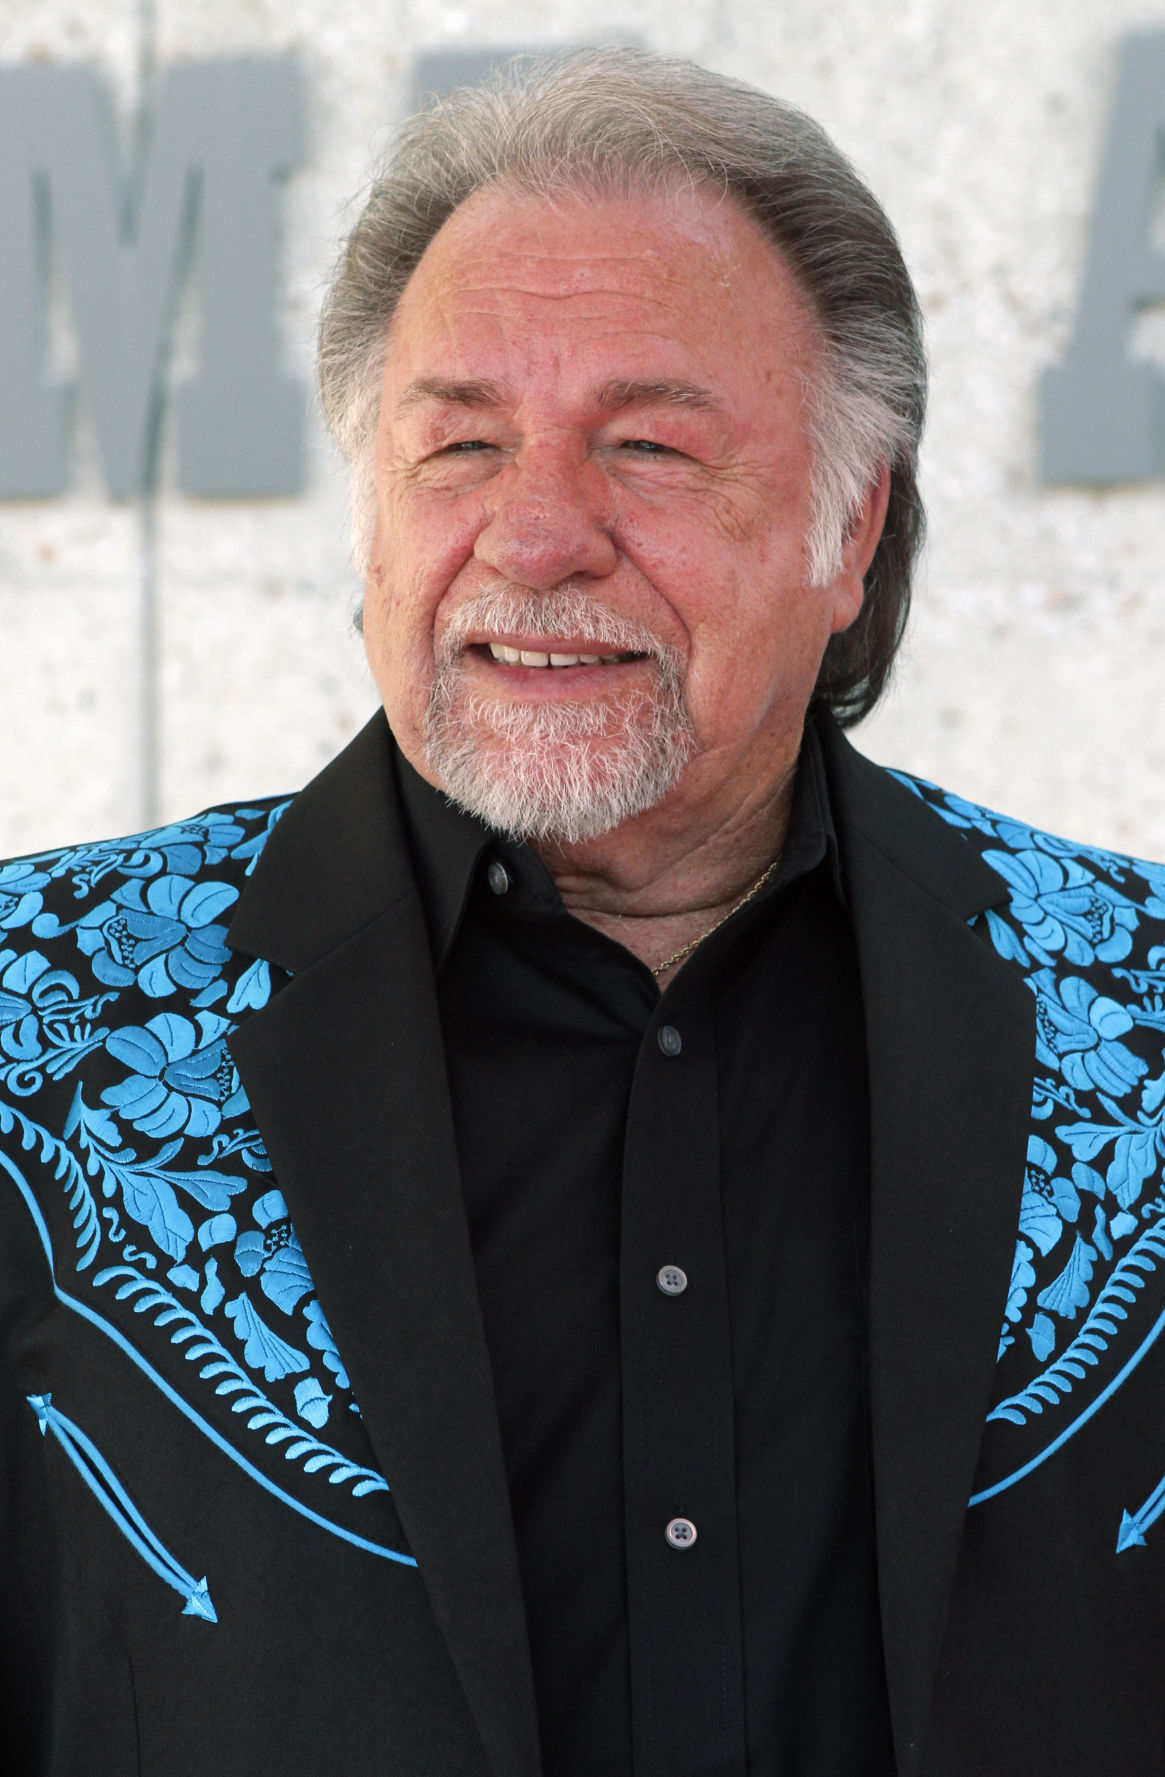 traditional country vocalist gene watson to perform in marion